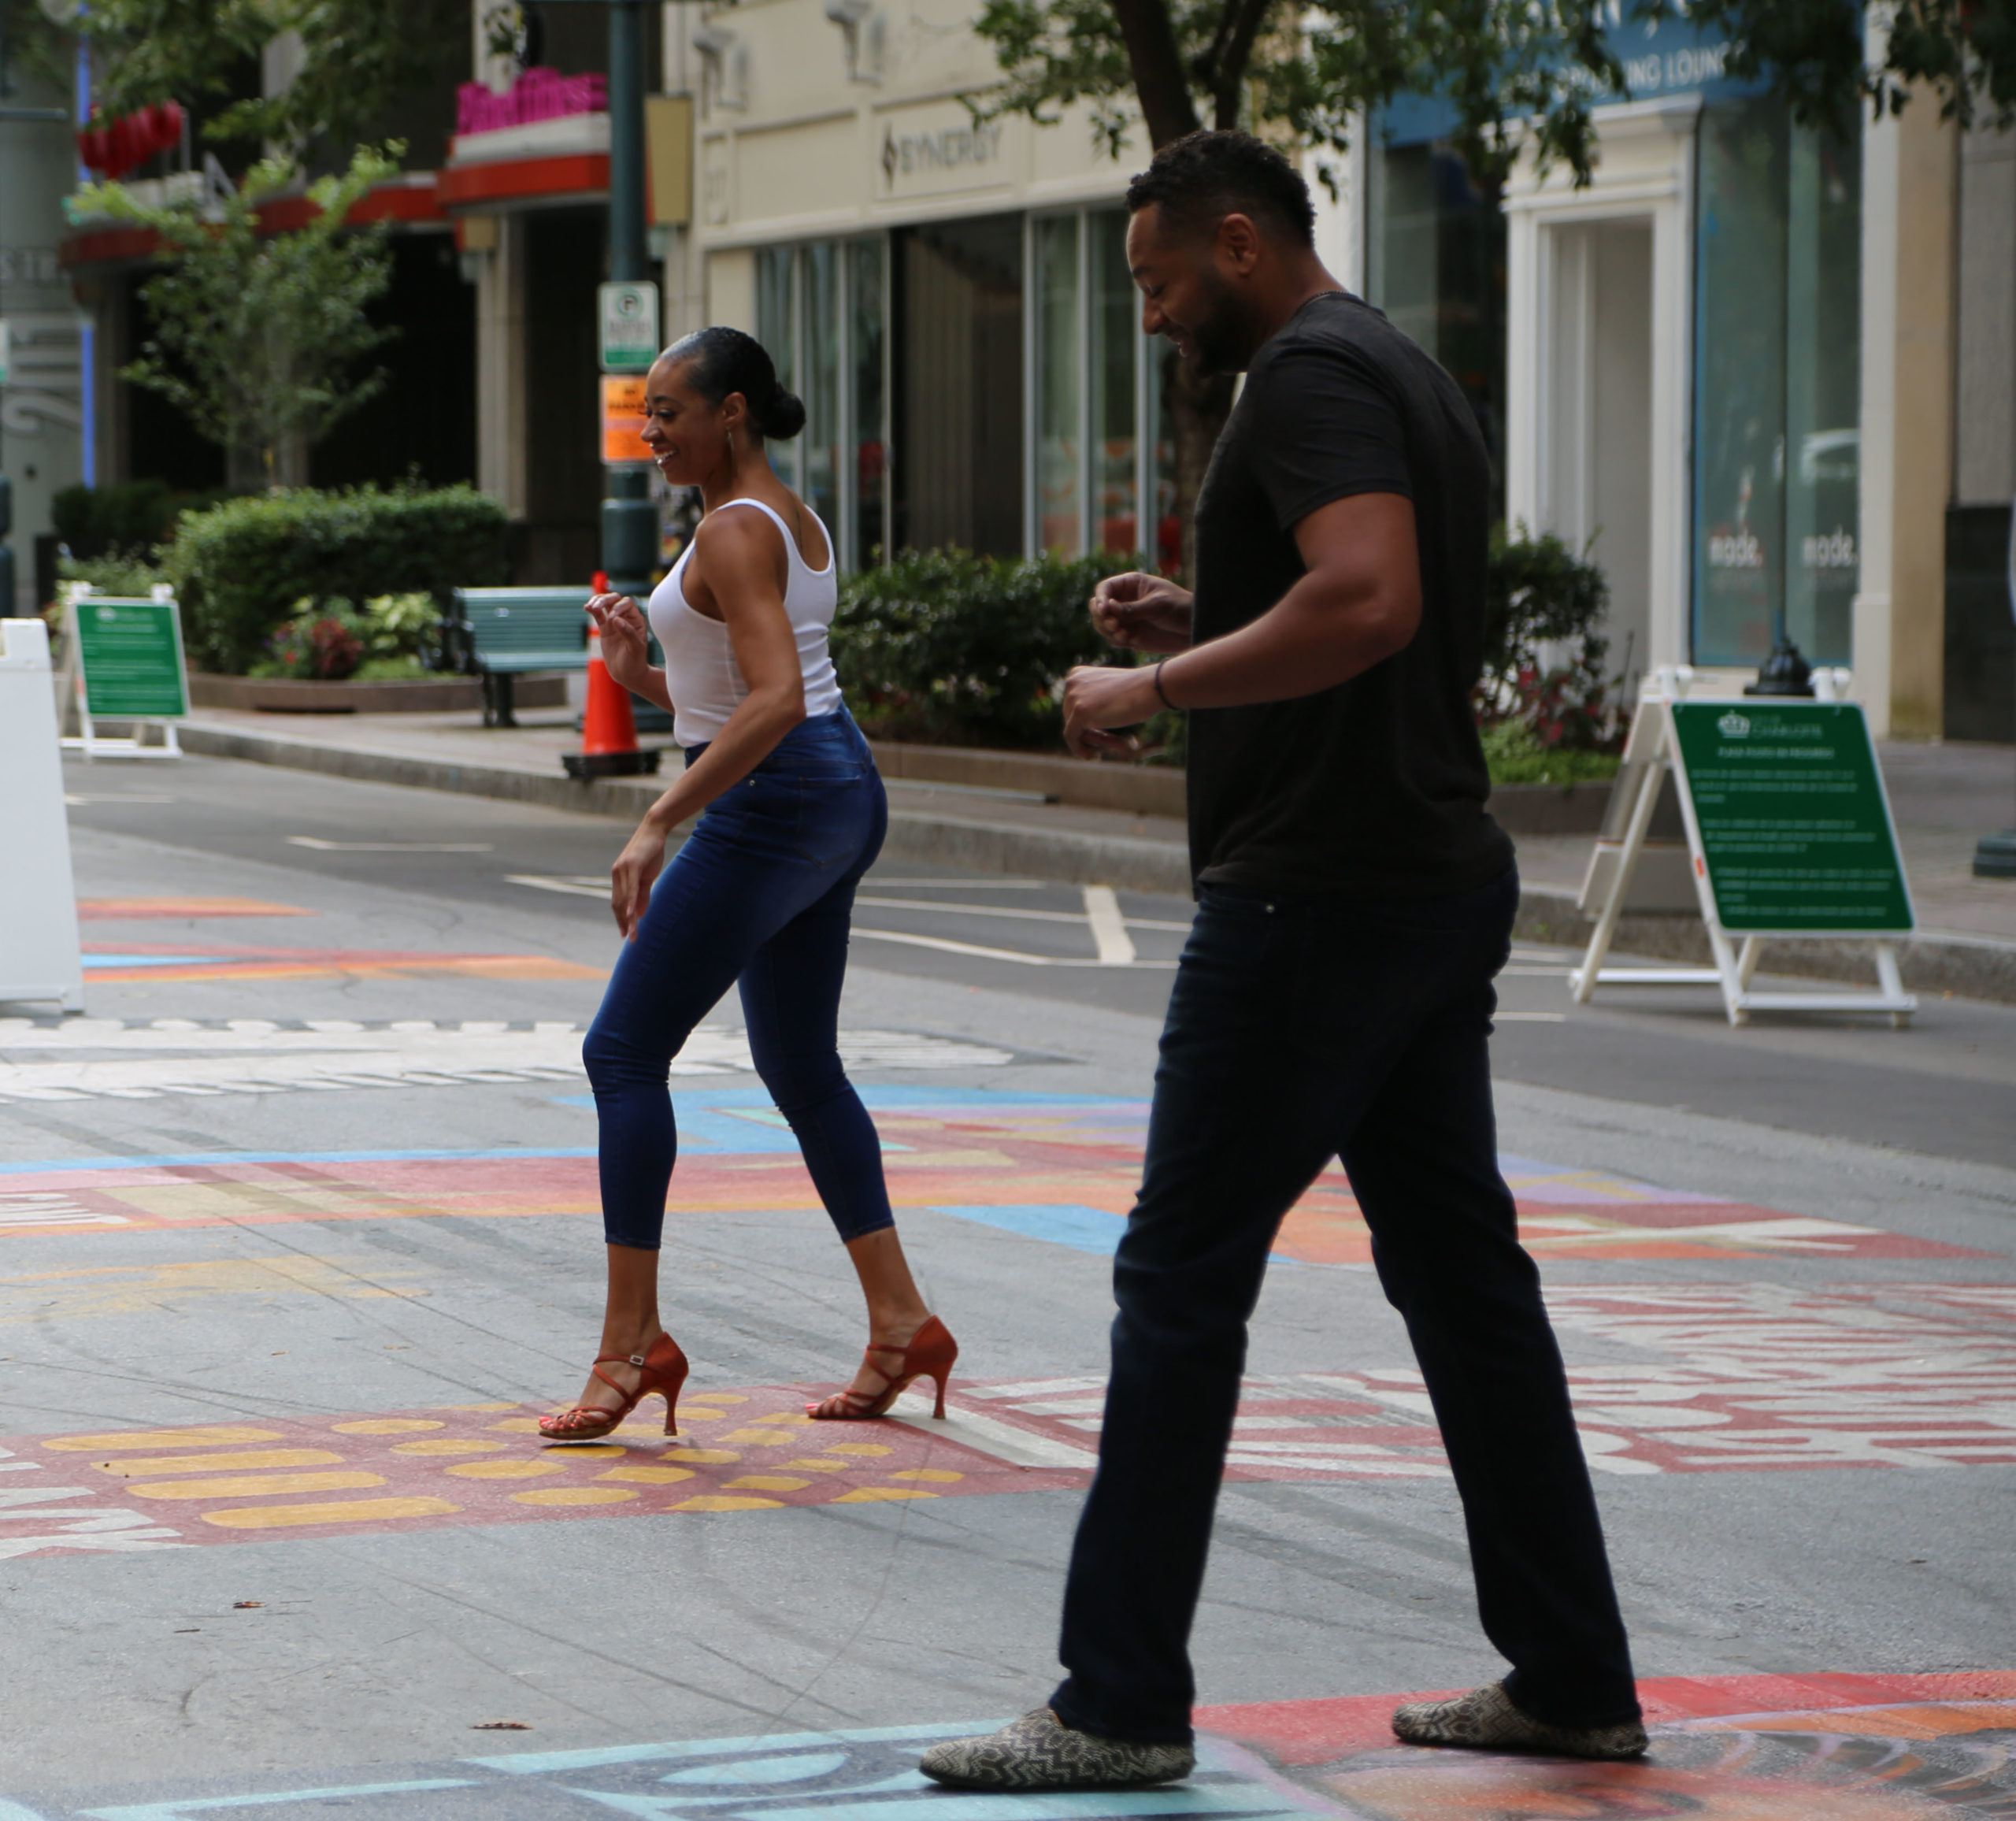 Mint to Move instructors lead a virtual dance lesson on the Black Lives Matter mural in uptown. September 2020.